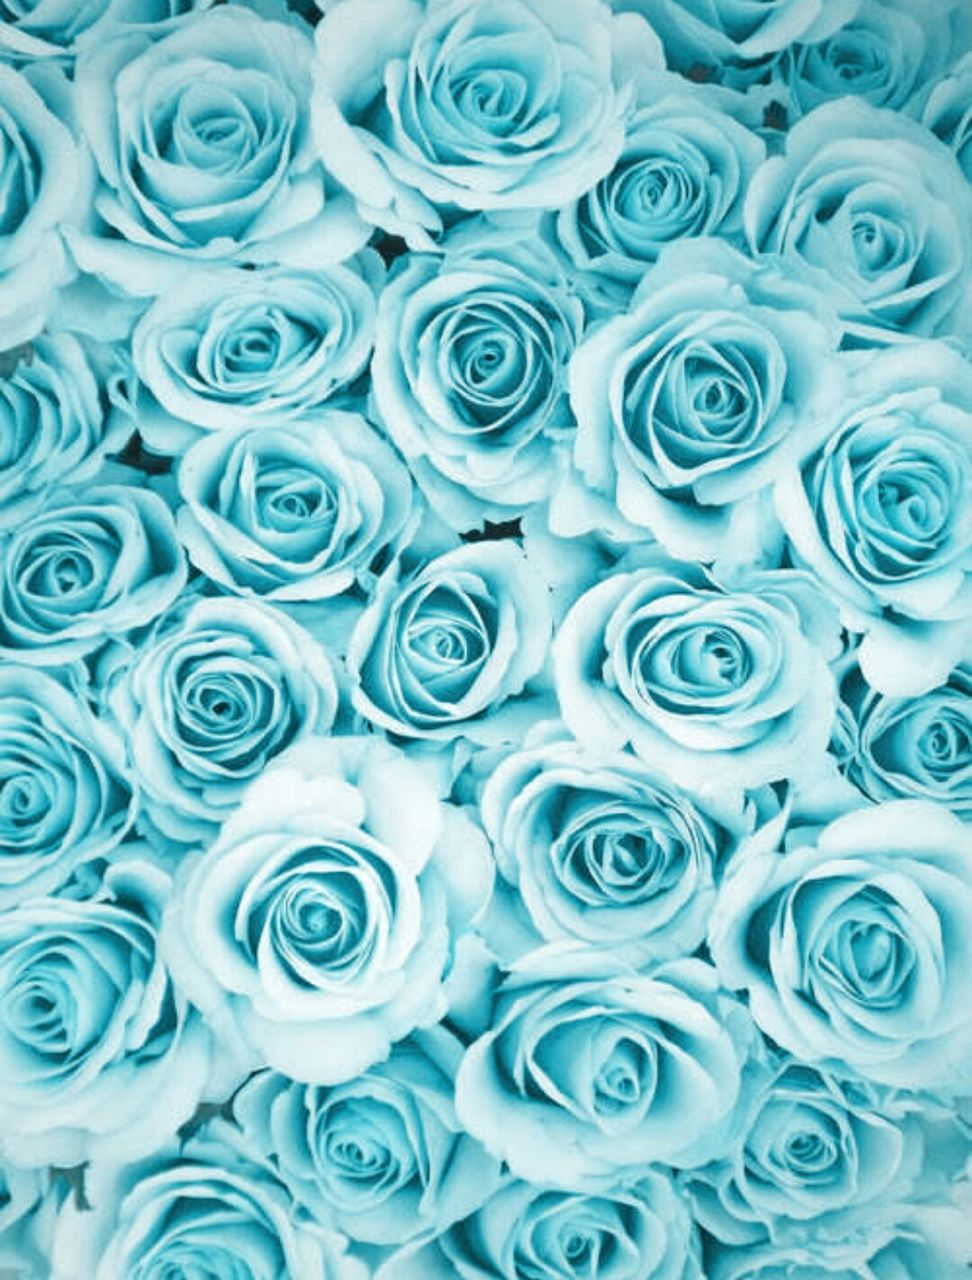 image result for blue roses background blue aesthetic